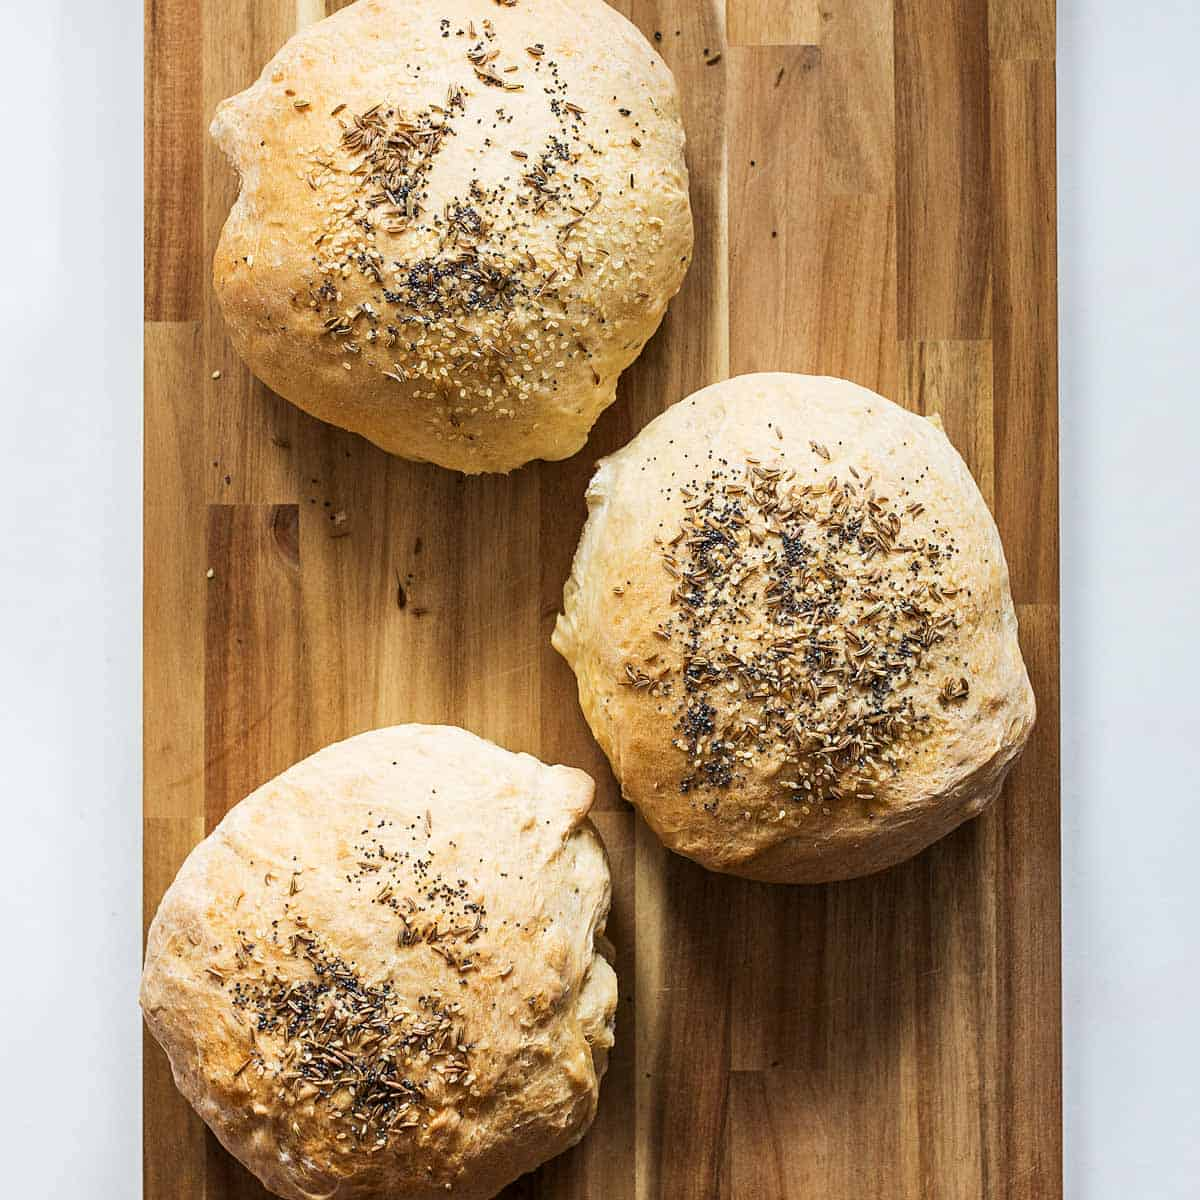 Homemade bread bowls on wooden board